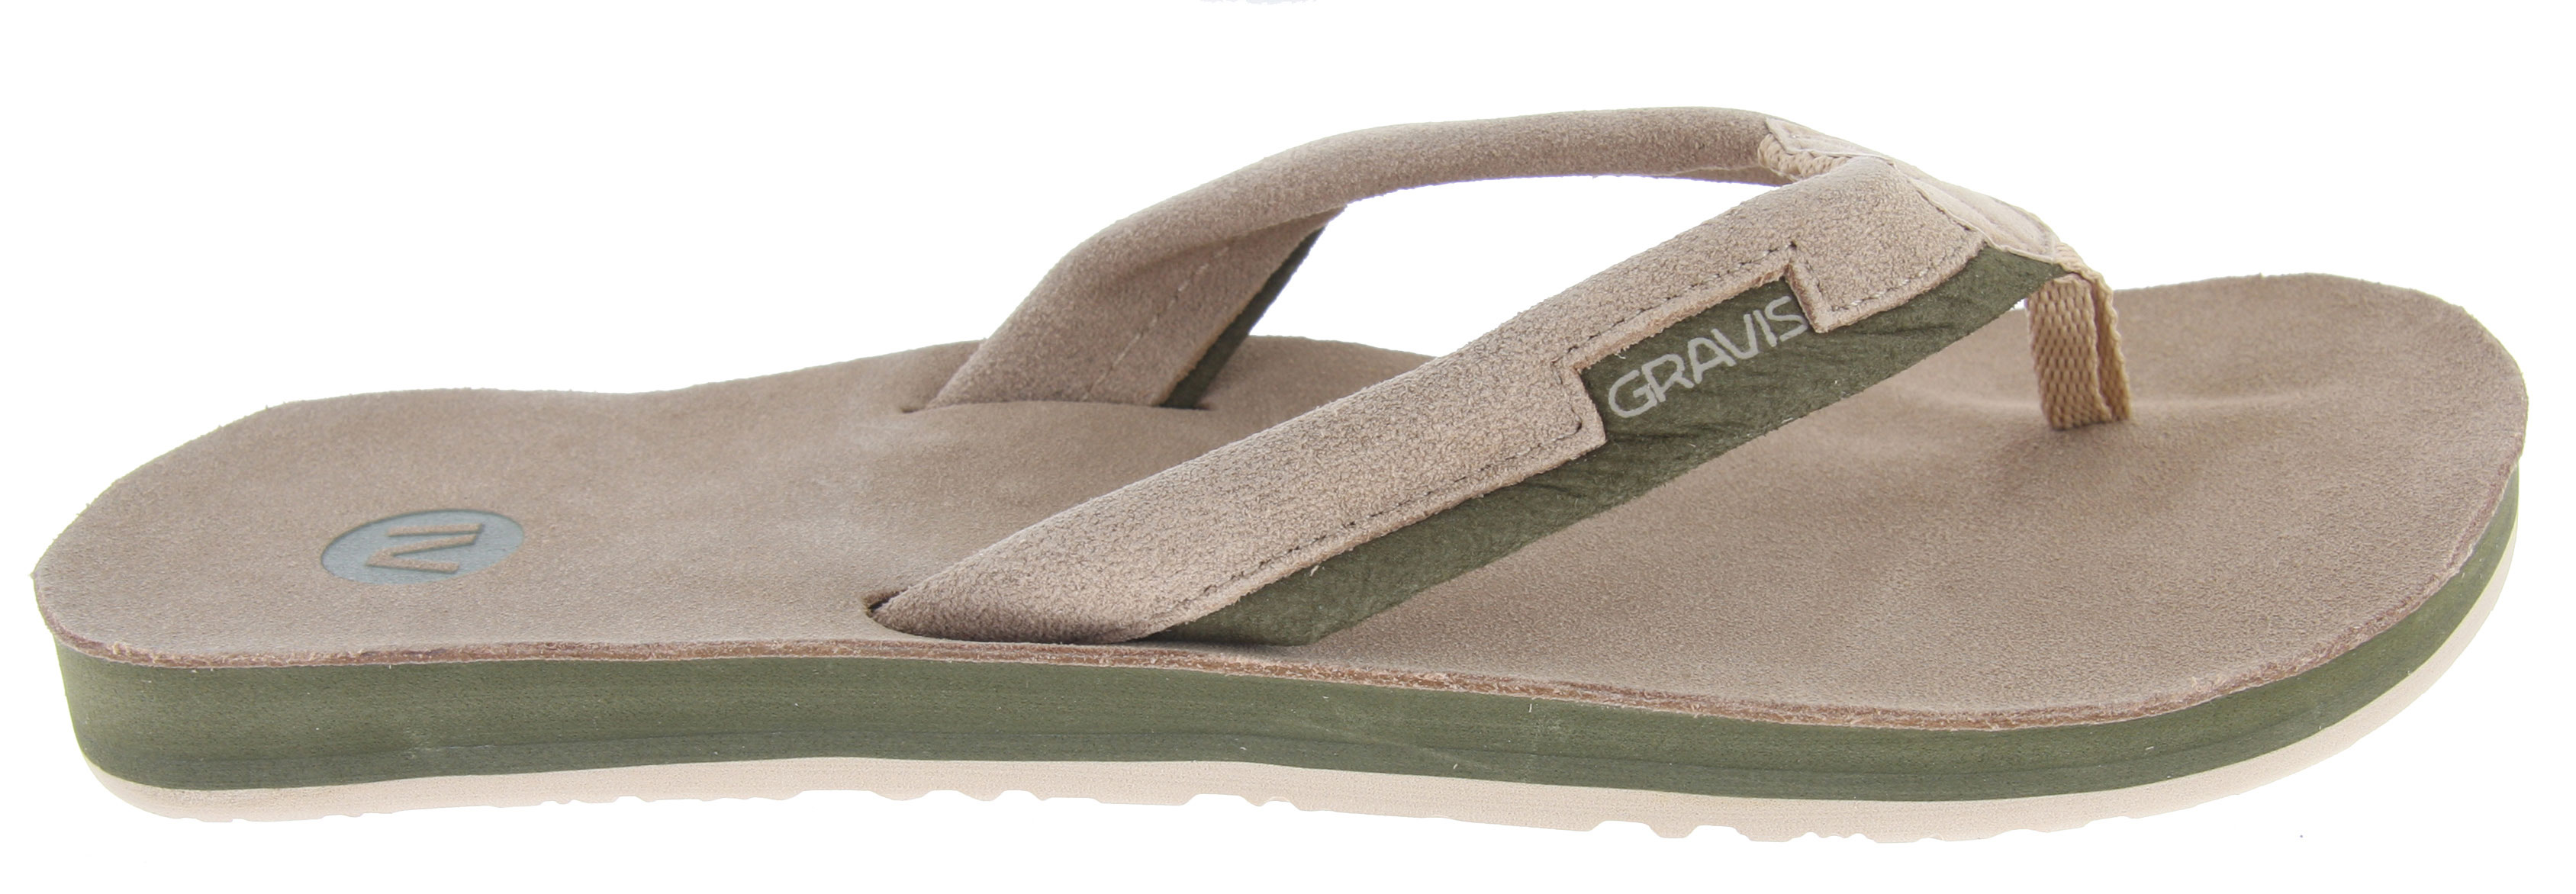 Surf Free your feet and get ready for summer with the Gravis Slider sandals. Premium leather is uses on the top deck, straps, and lining for extra comfort. The molded footbed with arch support lets you rock the Sliders all day, and the rugged synthetic outsole means they'll hold up to terrain from the beach to the pool. It's time to get out of those sneakers and boots and show your feet the light with the Gravis Slider sandals.Key Features of the Gravis Slider Sandals: Premium leather topdeck, straps, and lining Molded footbed Gravis logo on footbed and straps. Arch support Durable synthetic outsole - $18.95